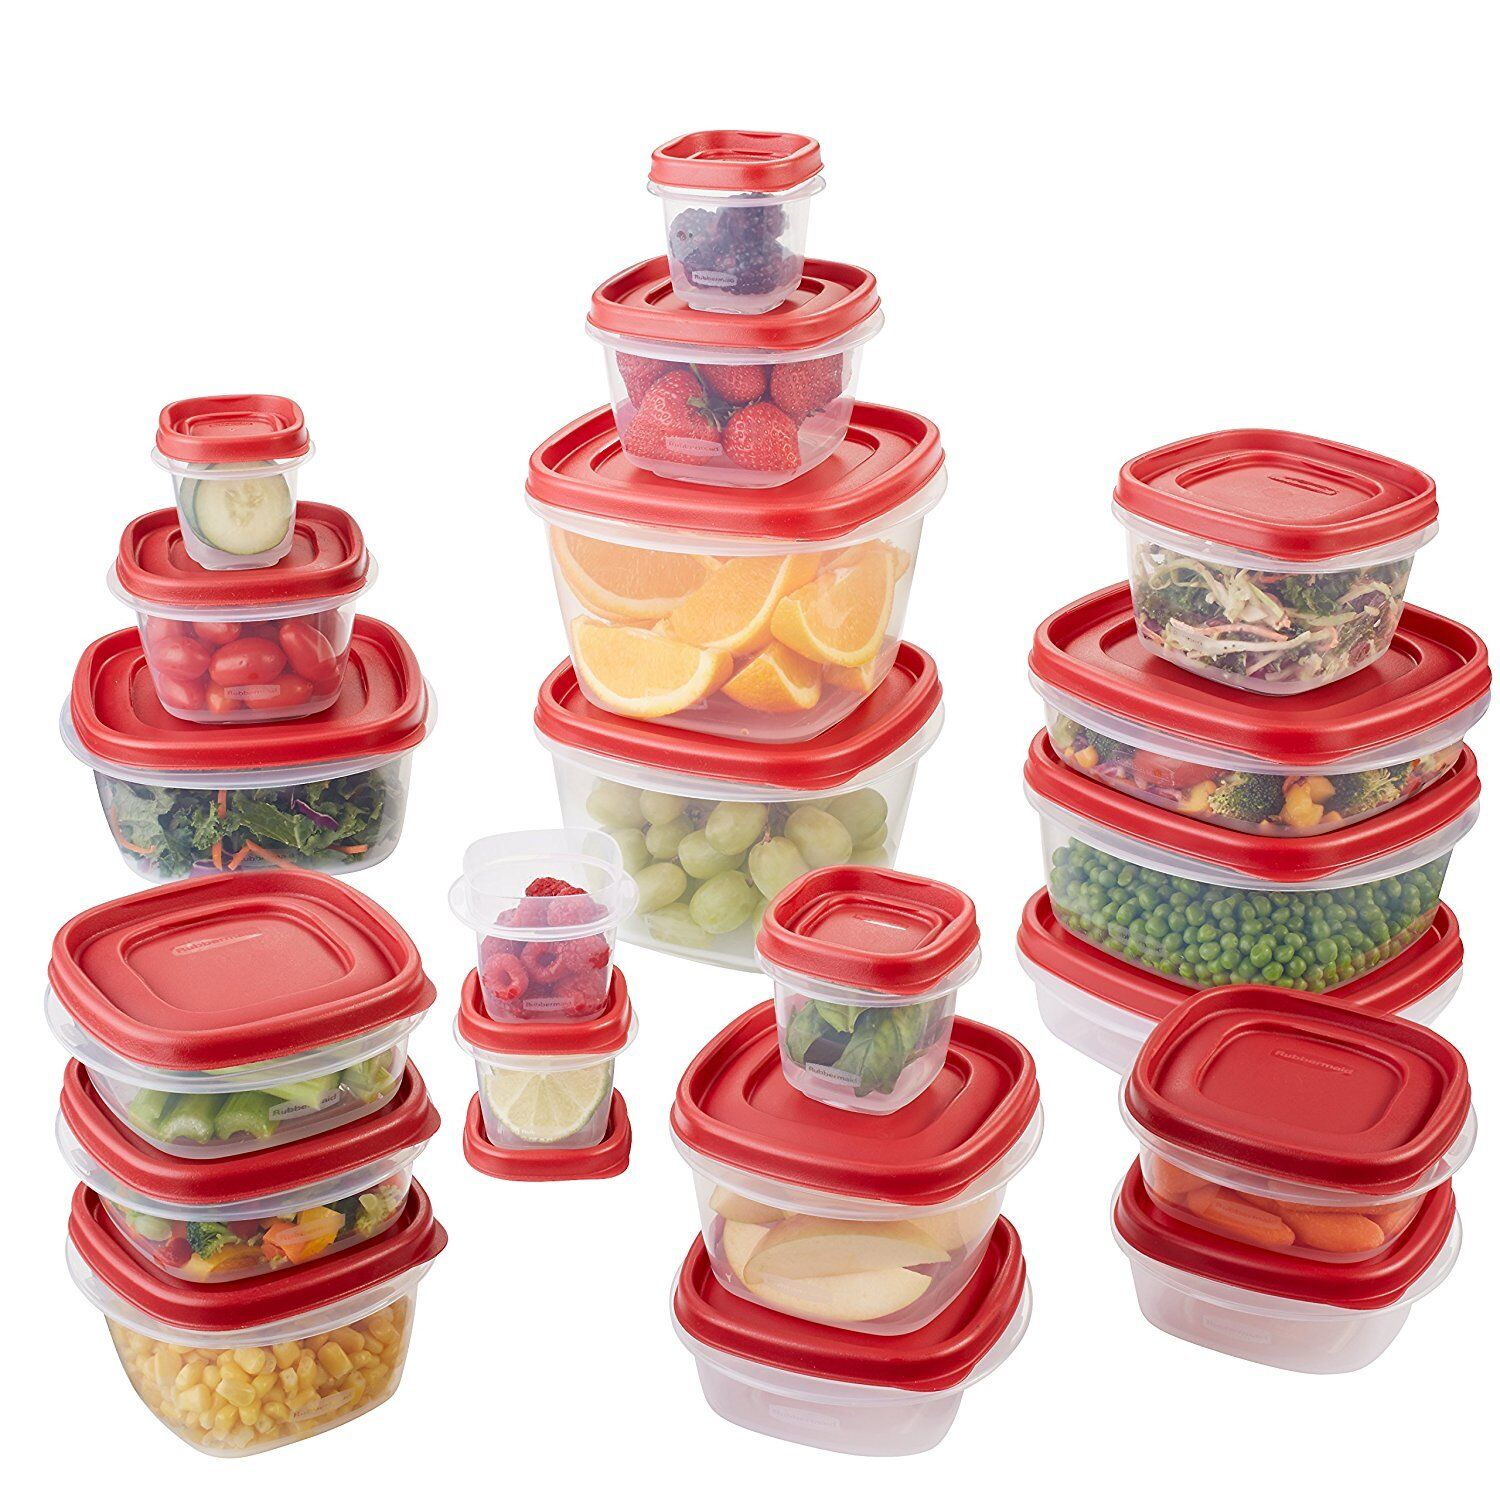 NEW RUBBERMAID EASY FIND LIDS FOOD STORAGE CONTAINER 42 PIEC